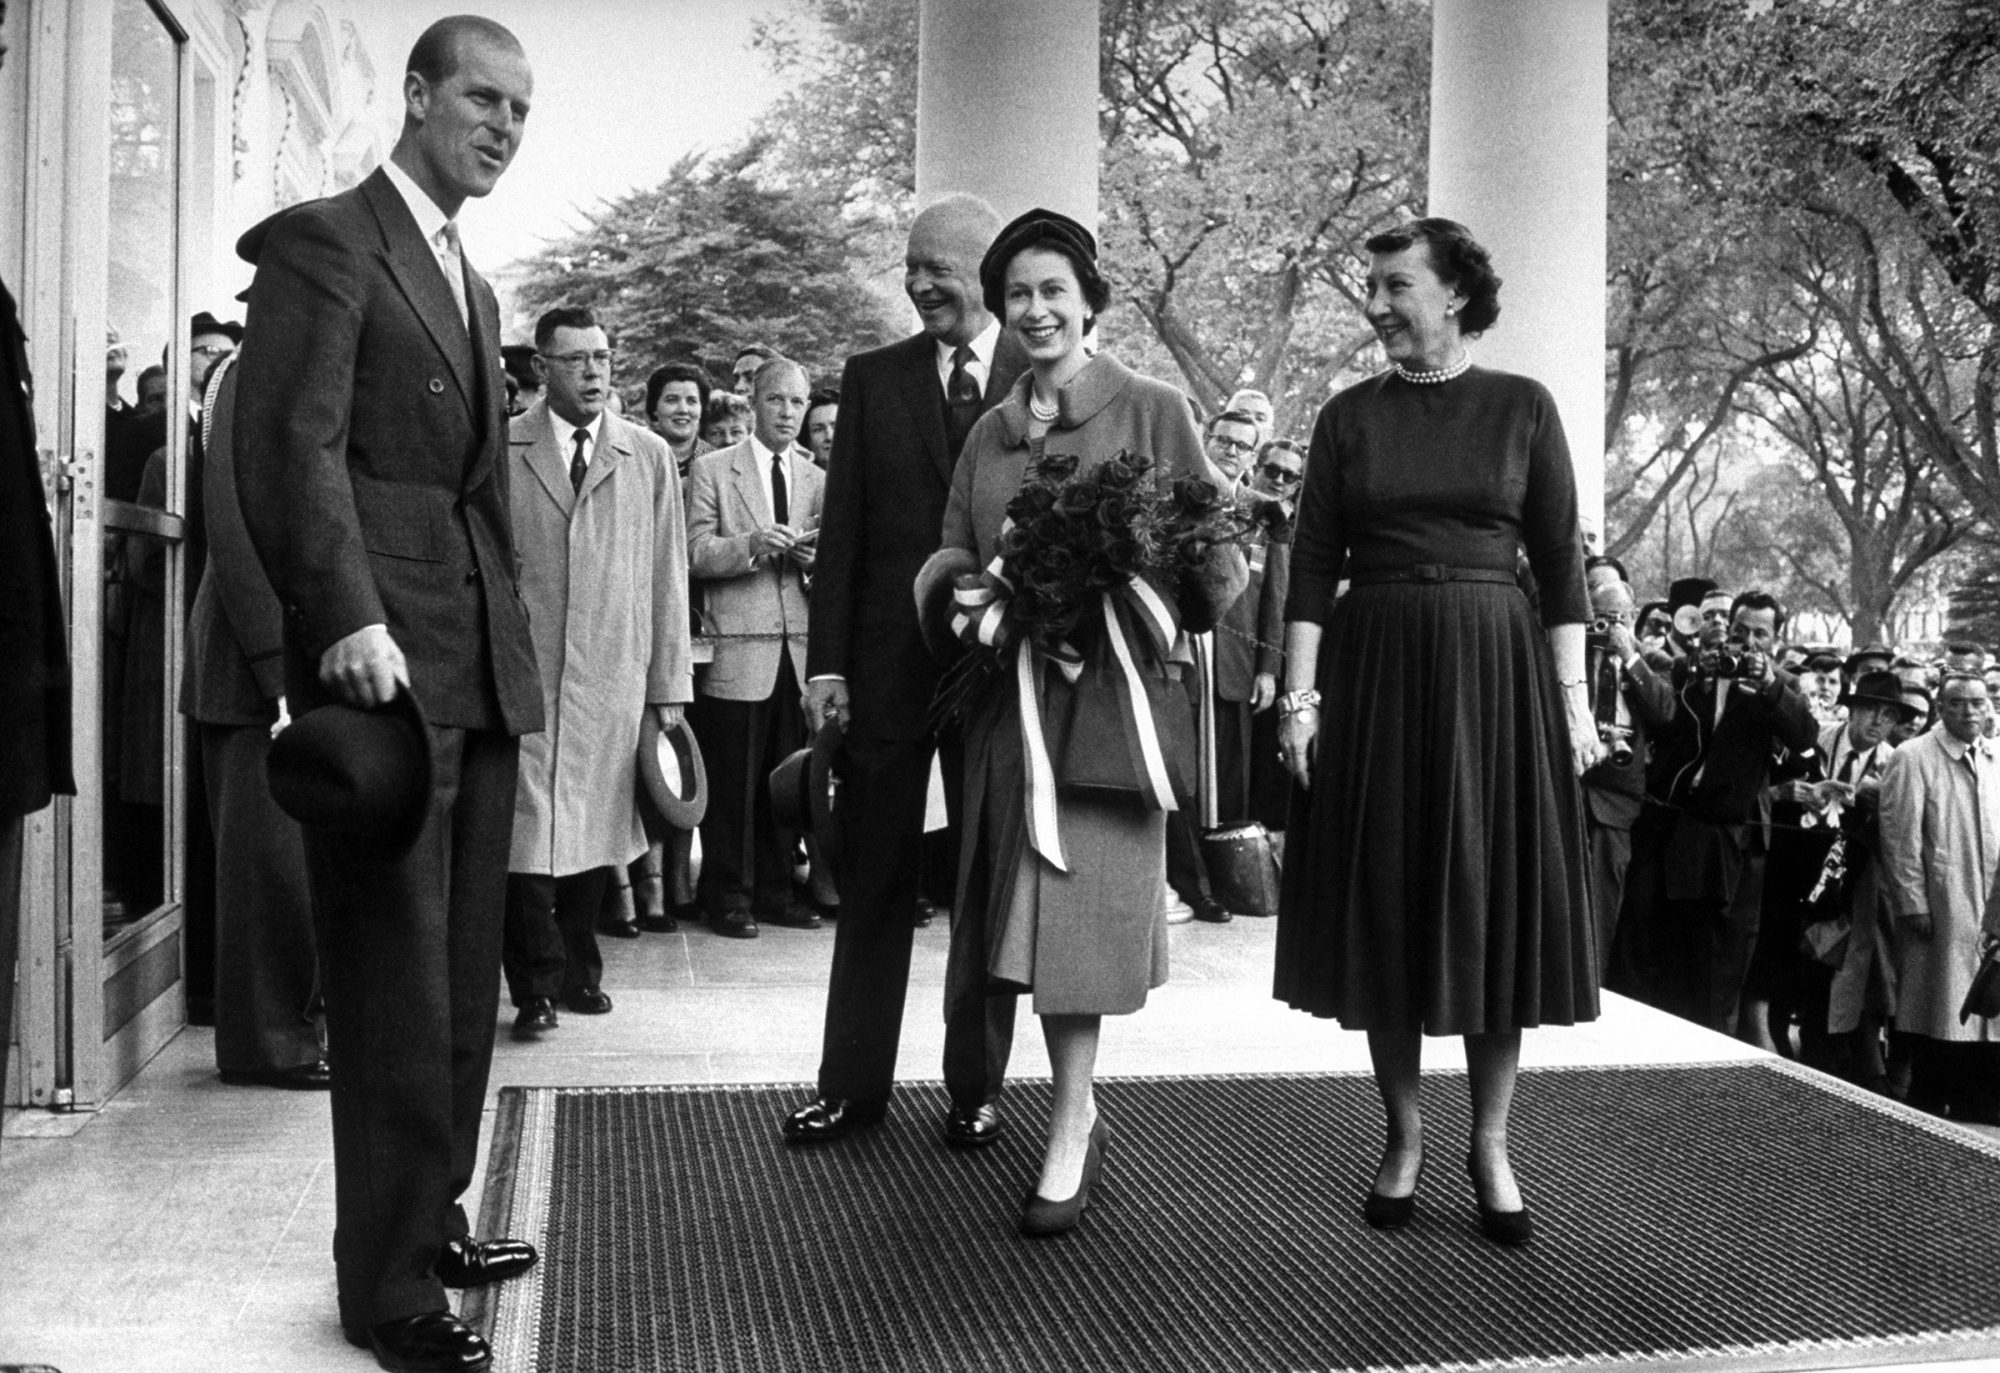 Queen Elizabeth and Prince Philip arriving at the White House and greet President Eisenhower, Washington, District of Columbia, 1957